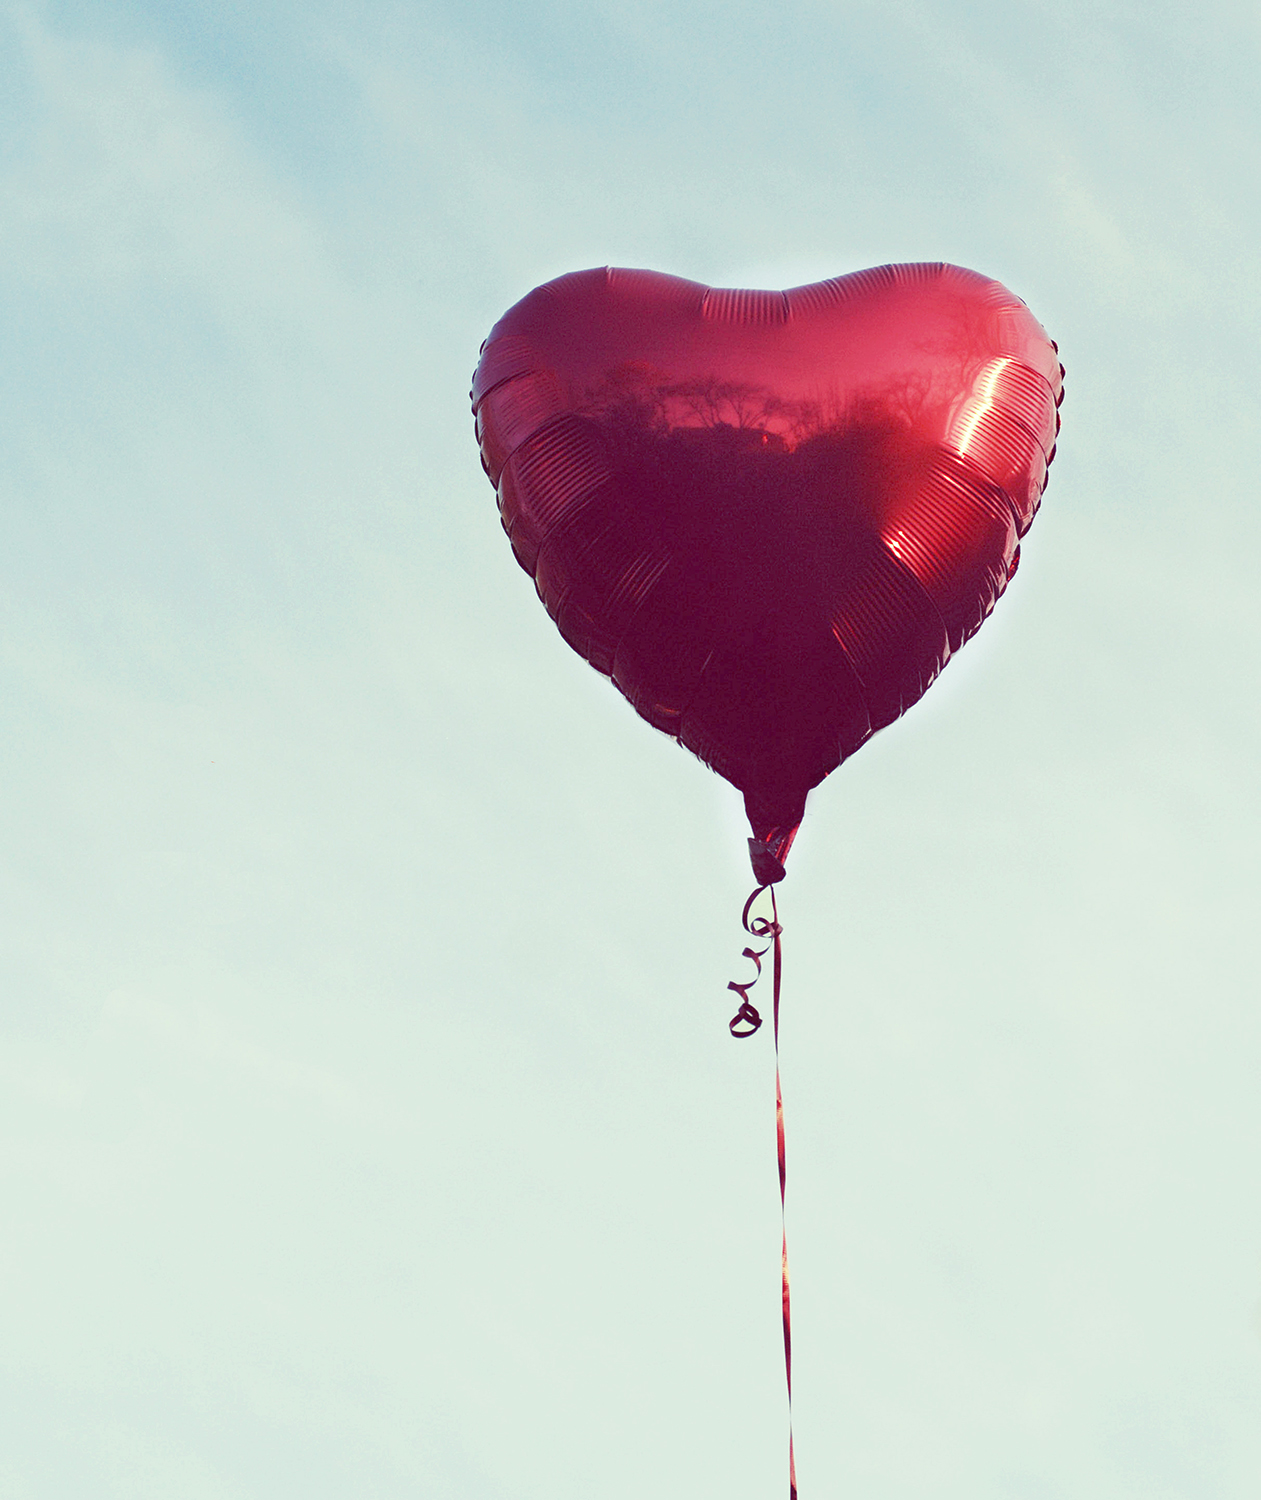 Red heart balloon against blue sky